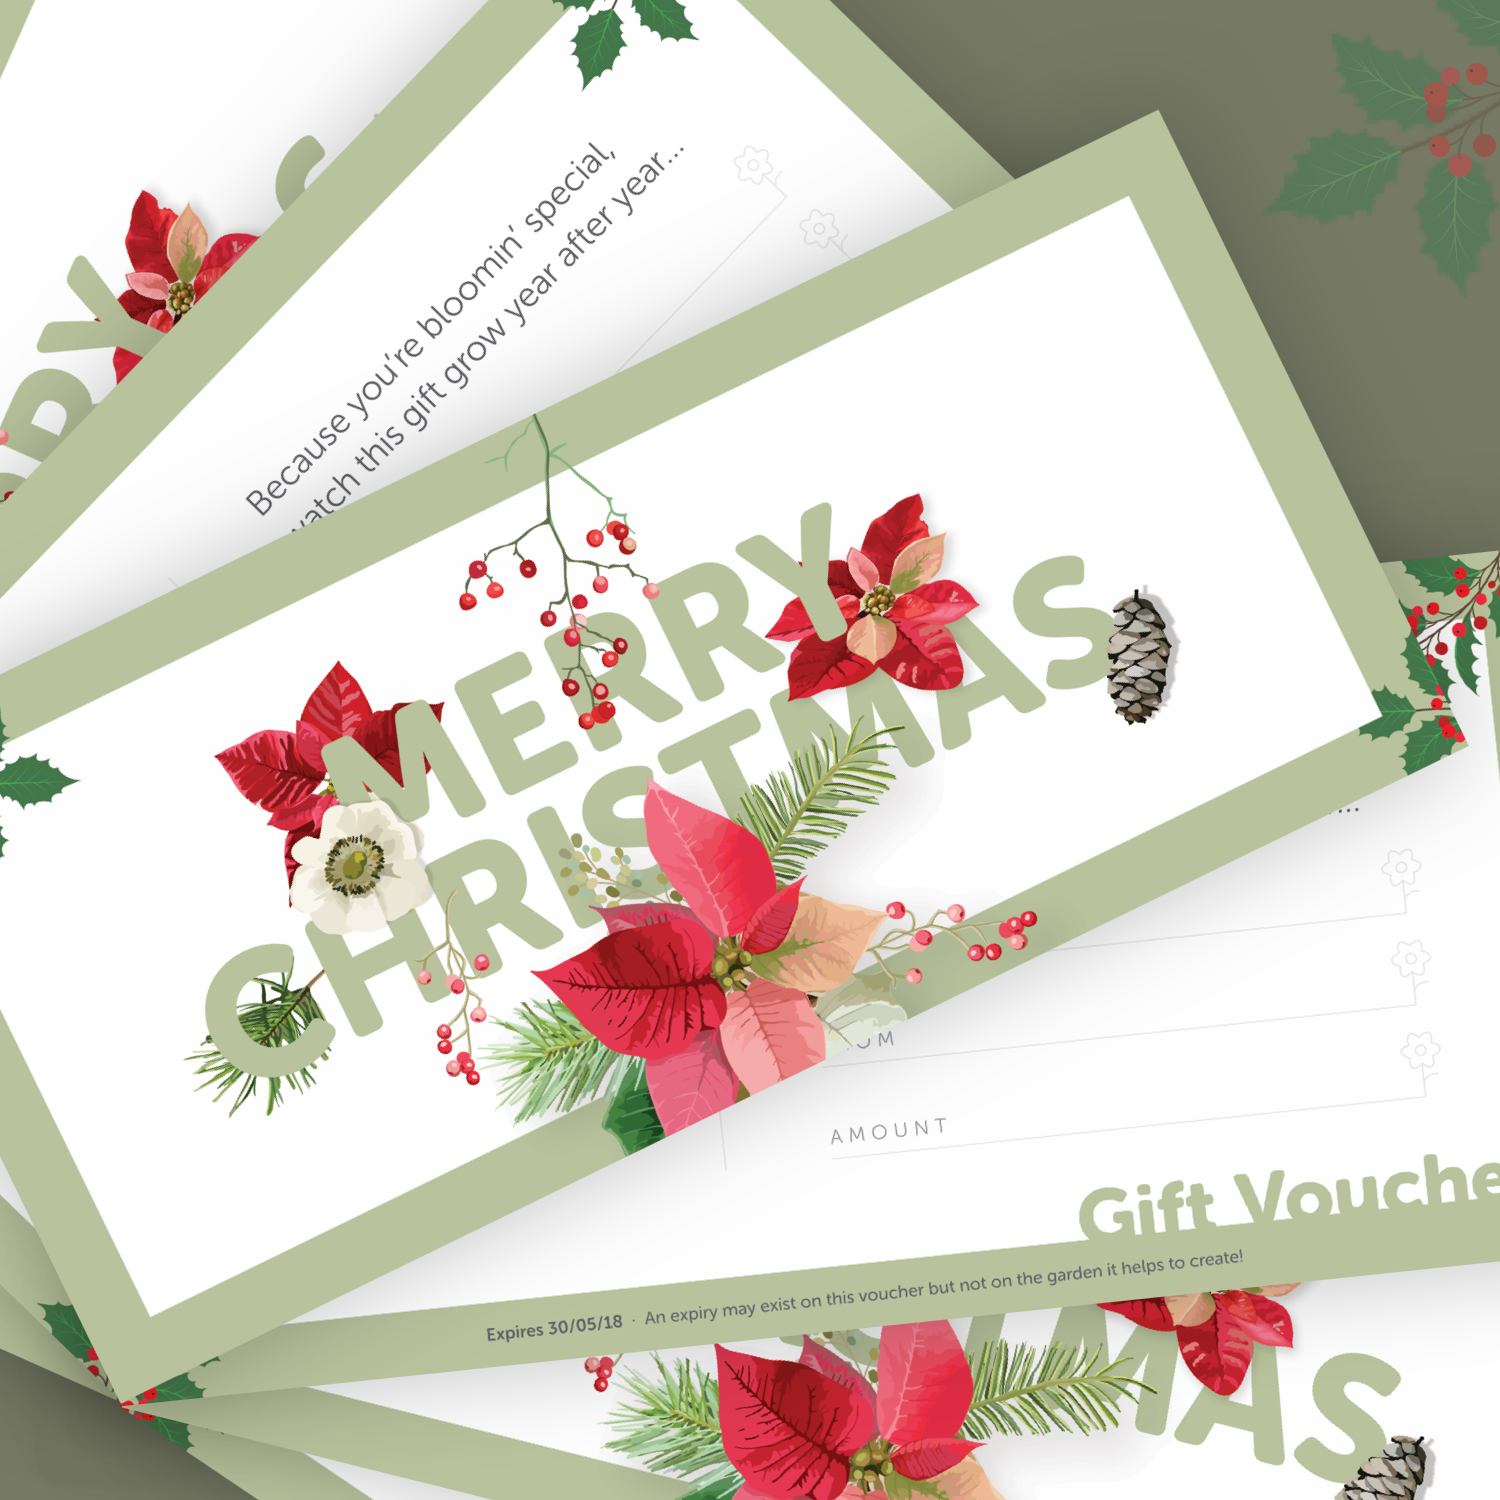 For the bloomin' special people in life - Give the gift of a beautiful garden with one of our Christmas gift vouchers. Available for a limited time only.